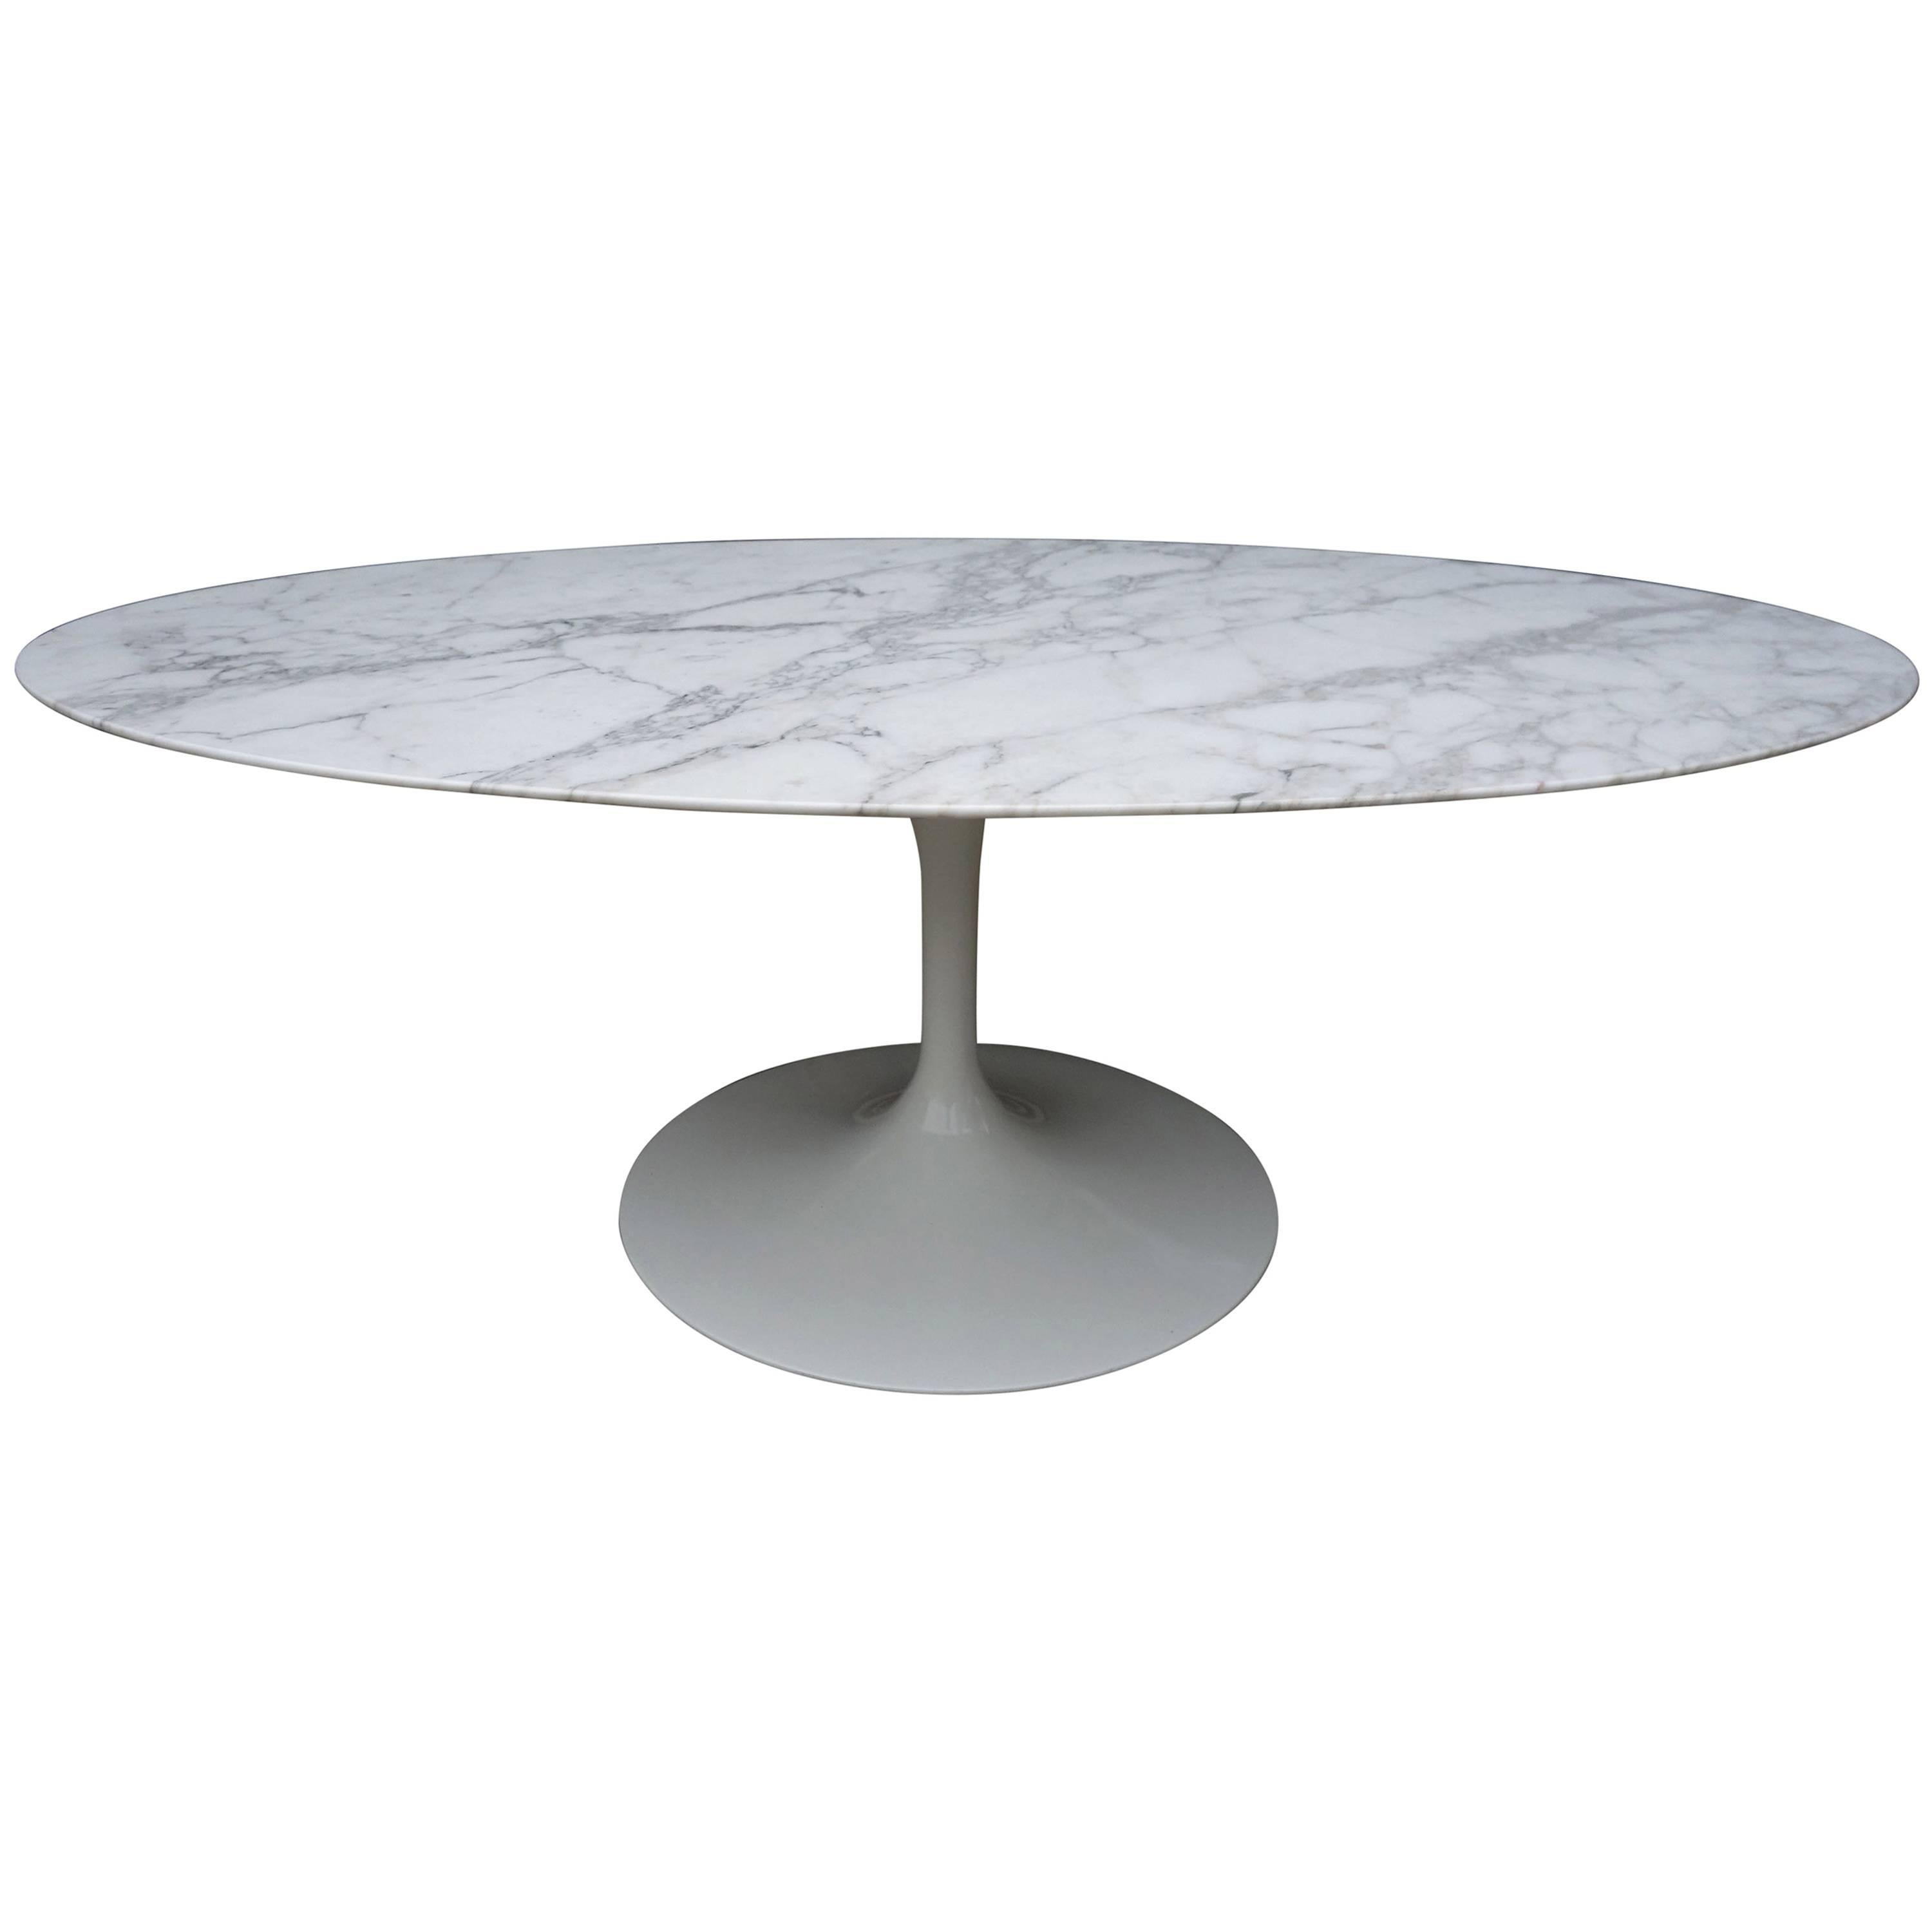 Midcentury Saarinen Oval Coffee Table With Special Order Marble Top